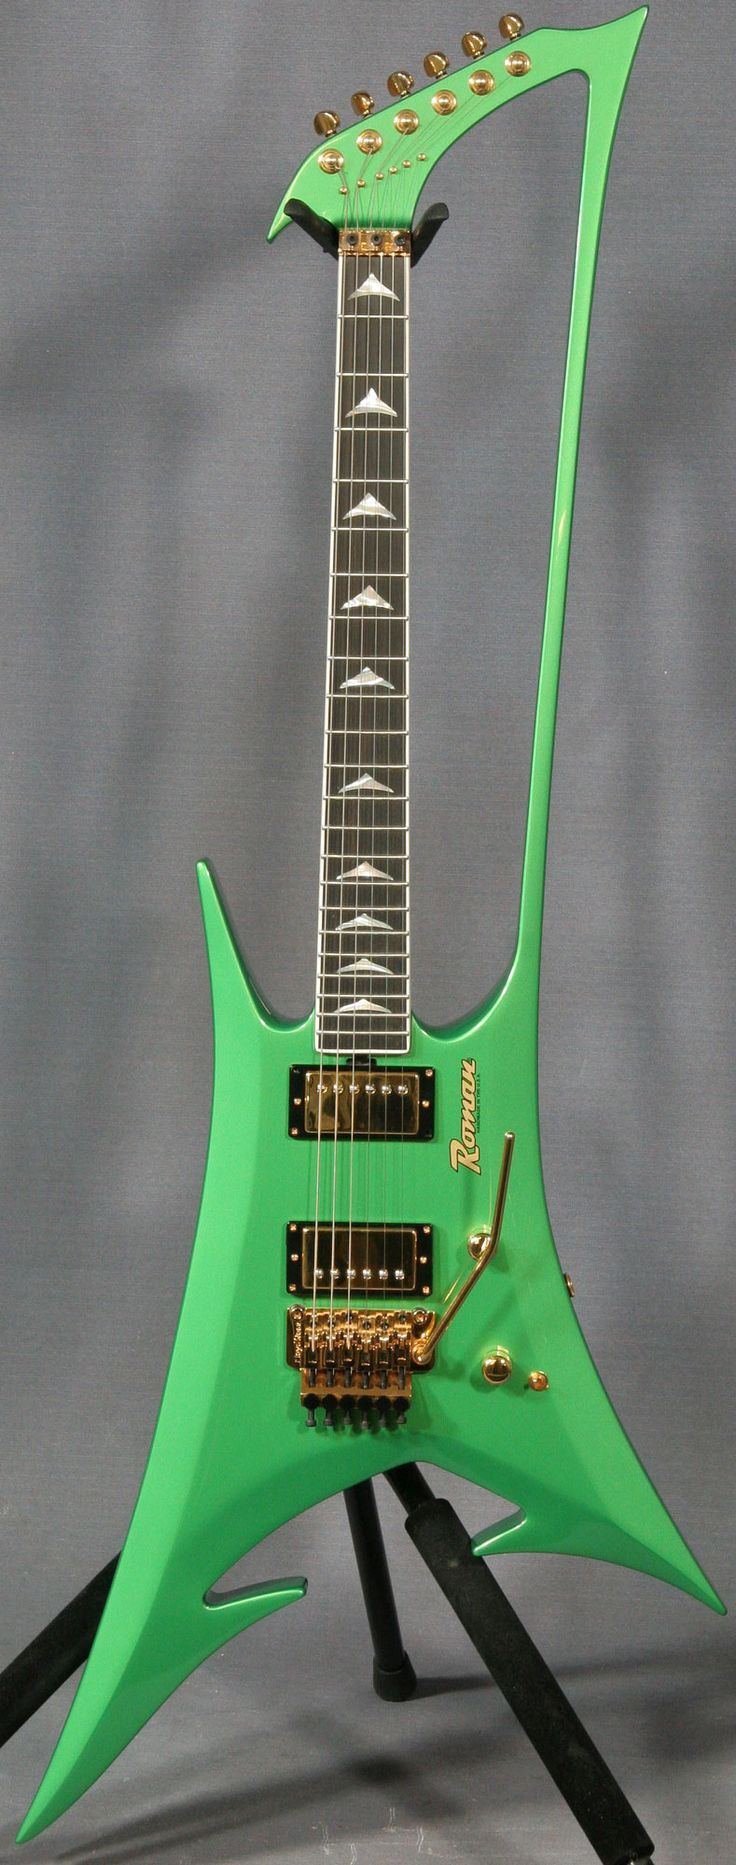 guitars for sale | Abstract Enterprize Guitar - Ed Roman Guitars #oneofakind #unique